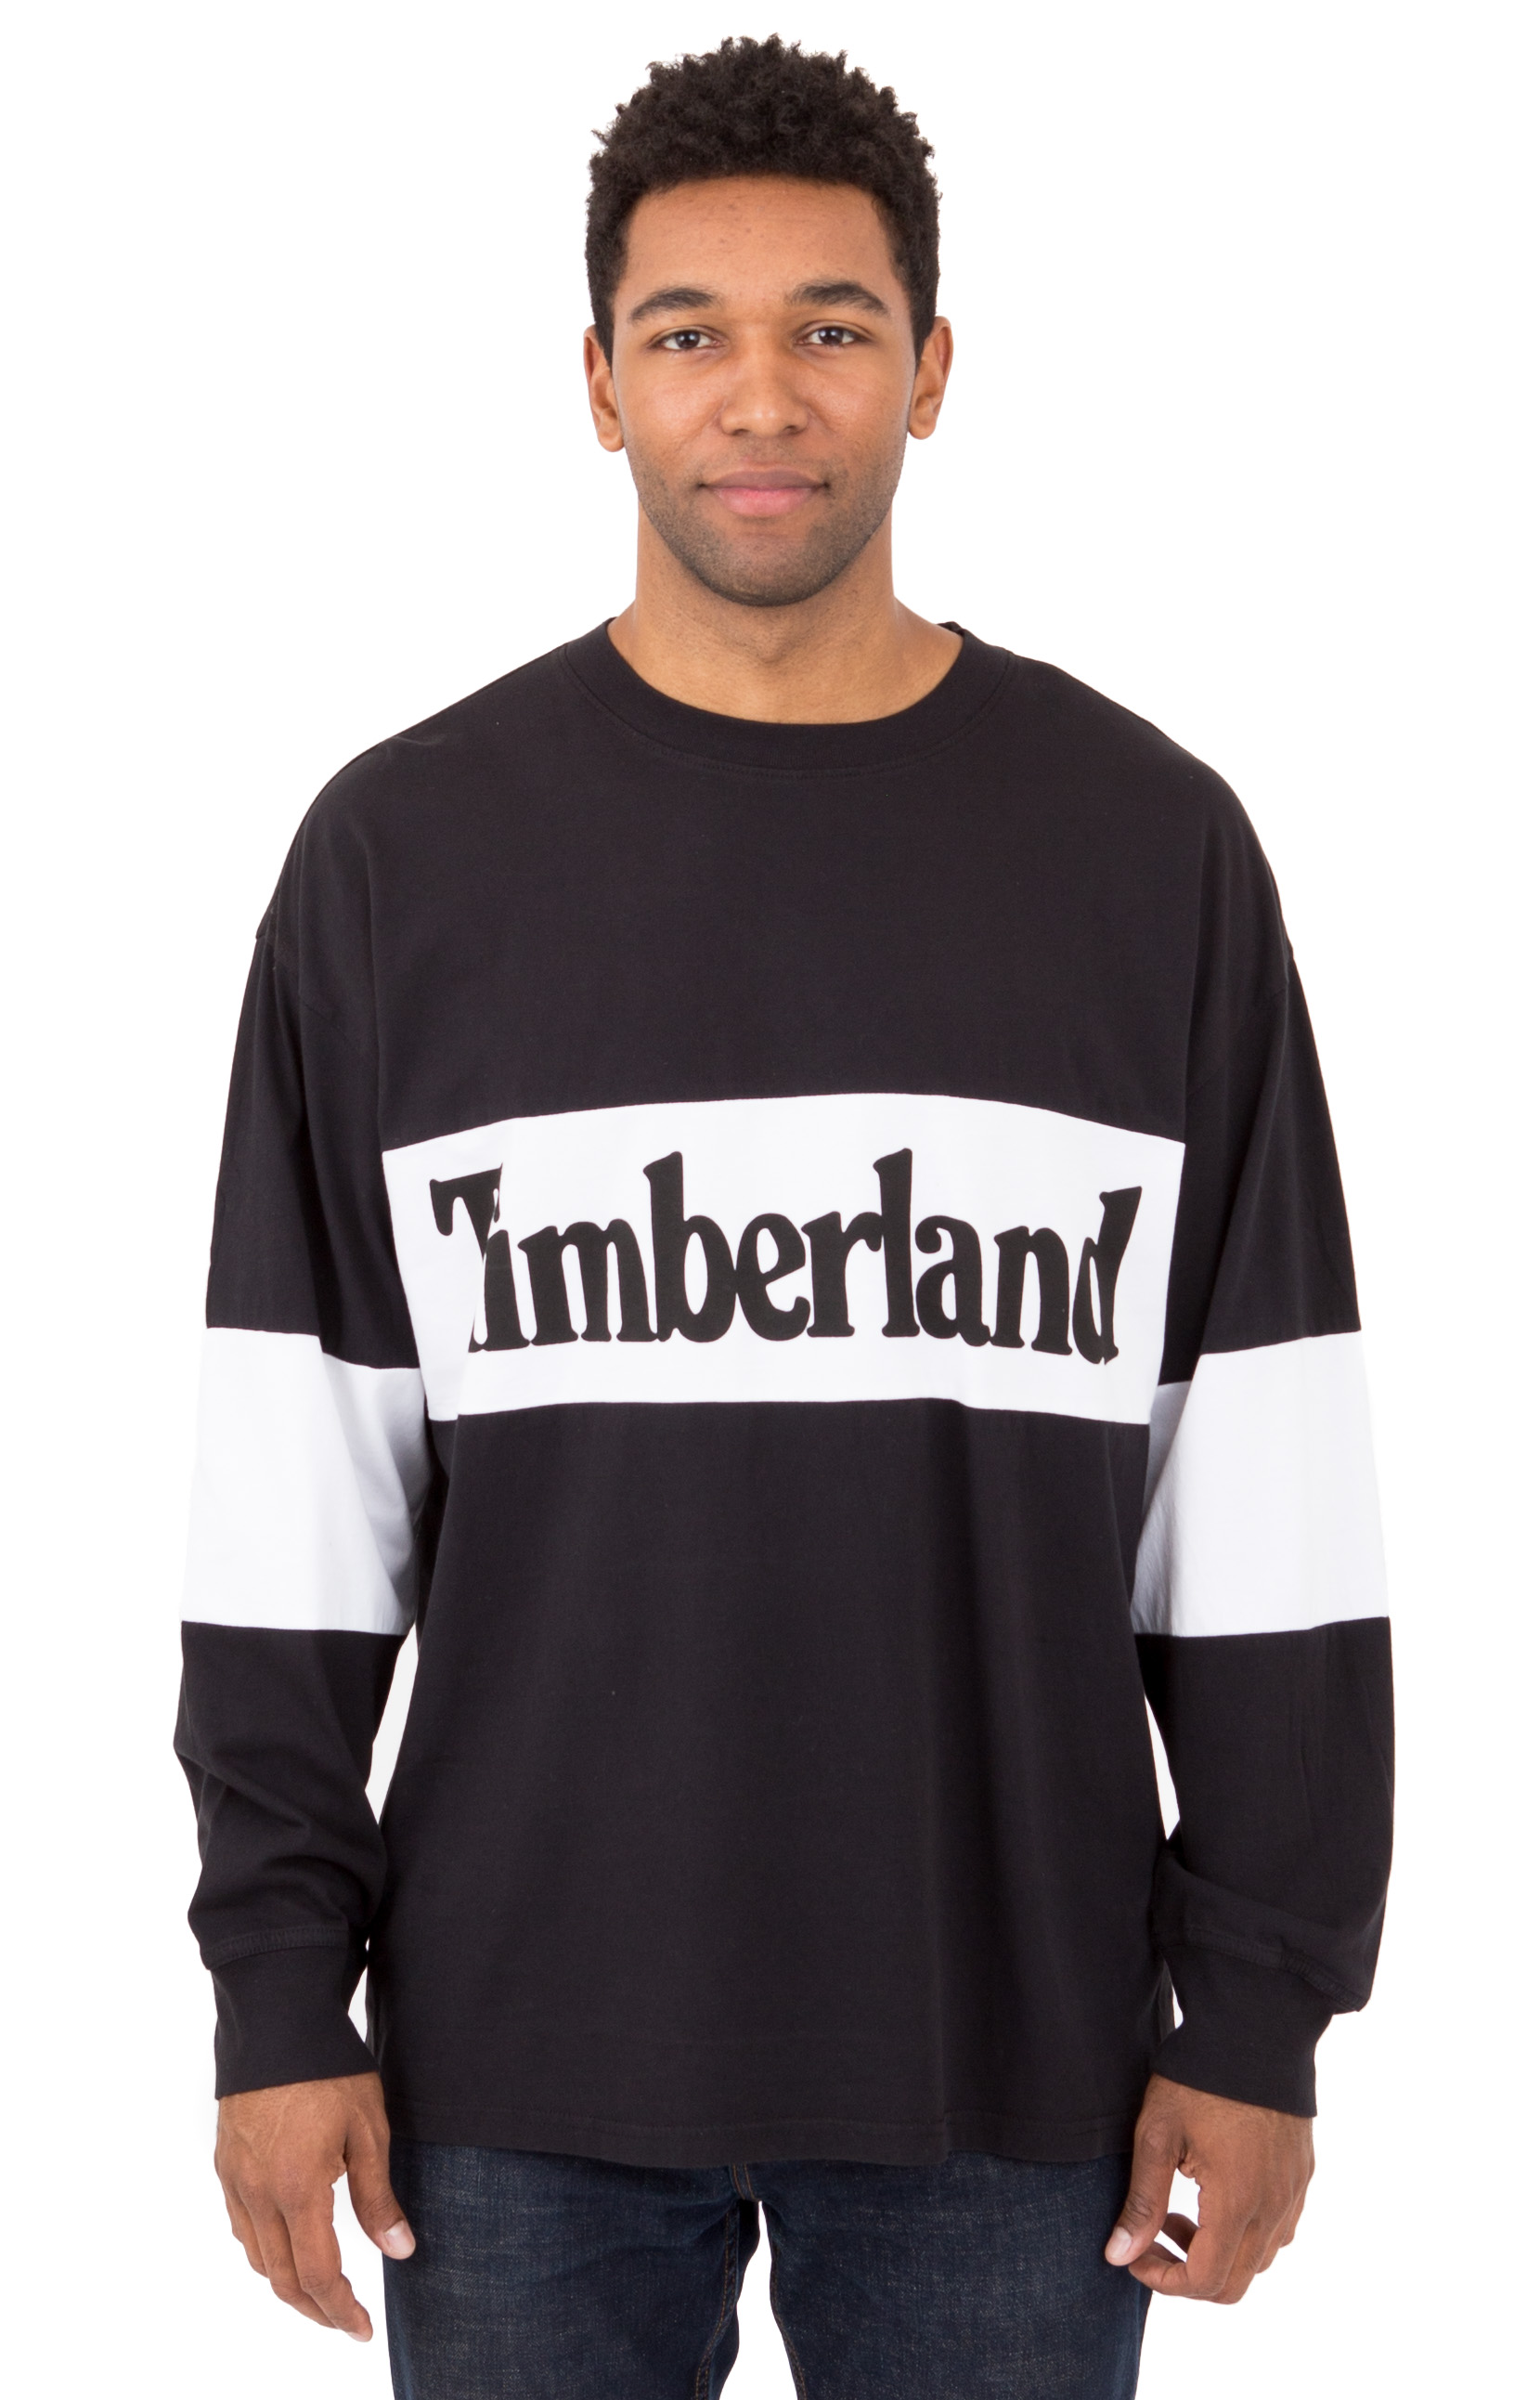 Warner River LS Retro Oversized T-Shirt - Black